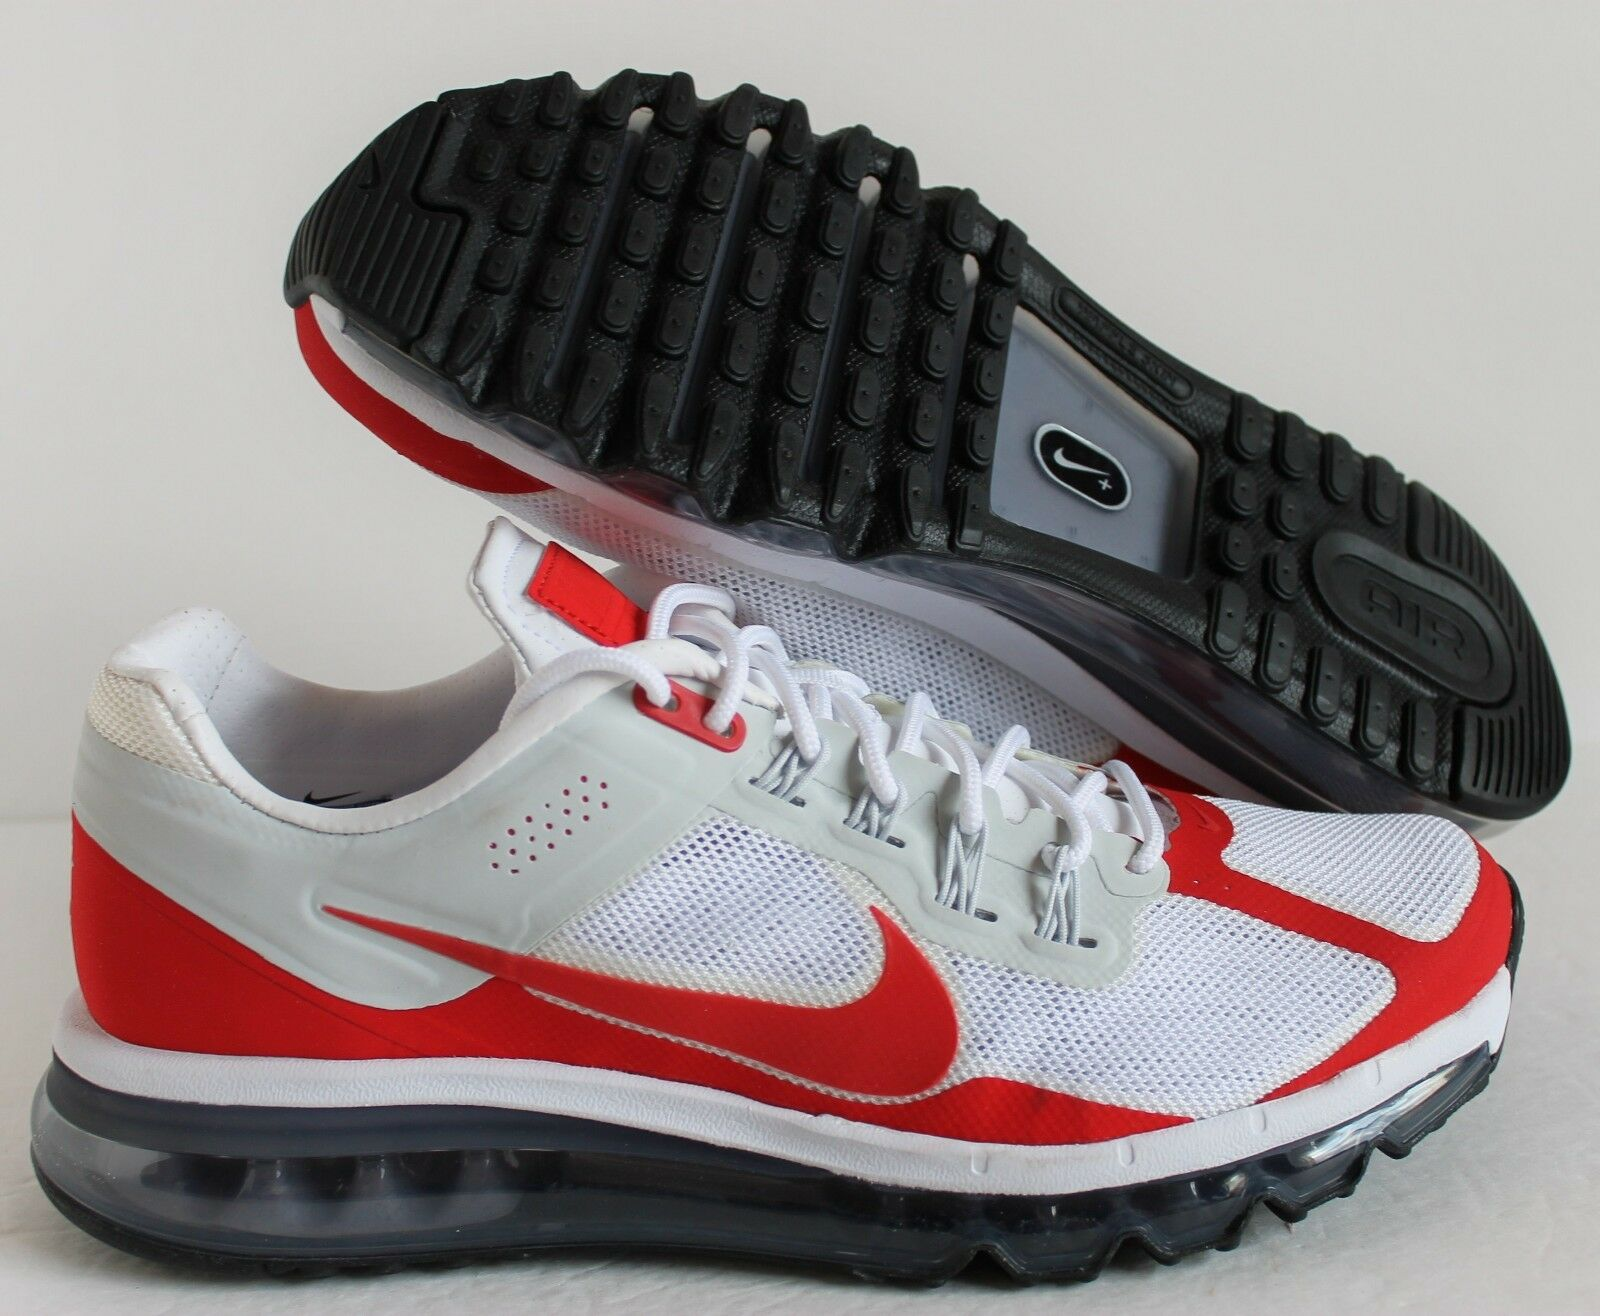 top quality nike air max 2013 gym rouge dcf84 02ae3